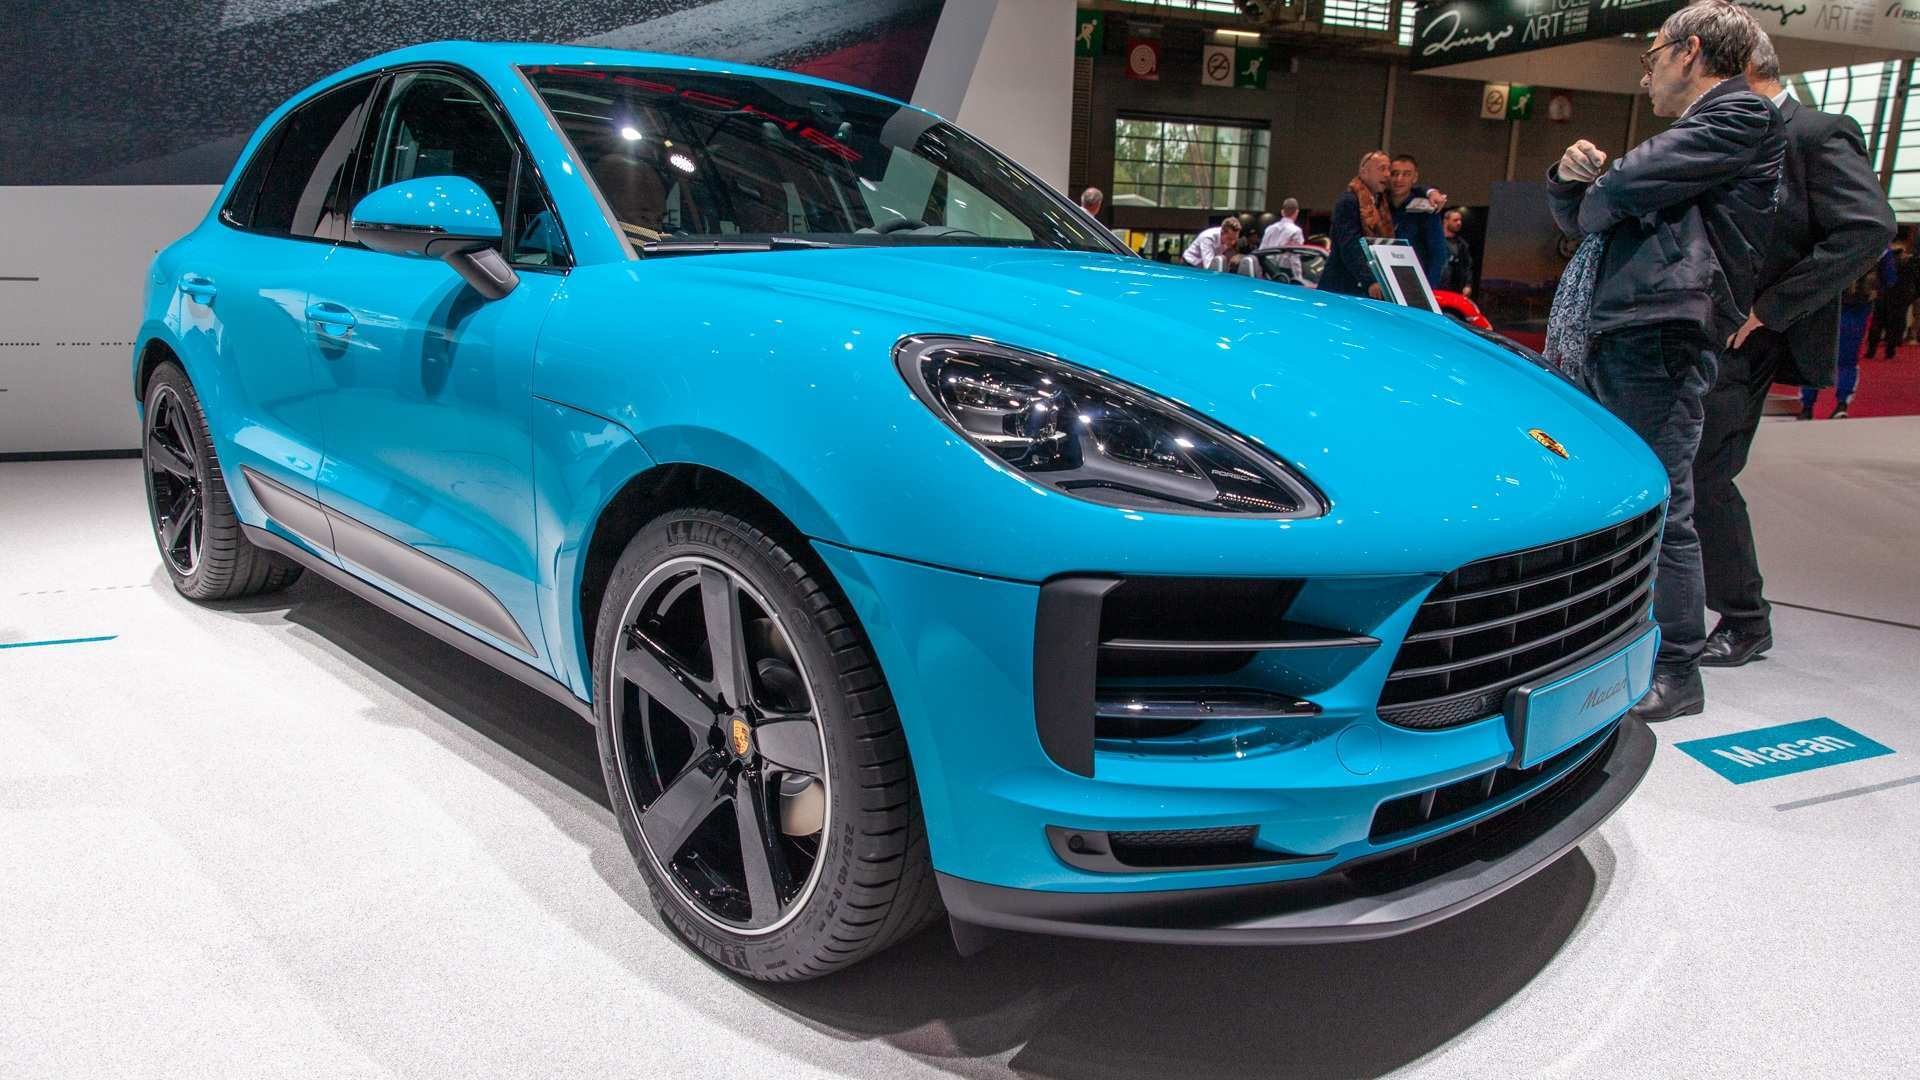 14 New 2019 Porsche Macan Hybrid Price with 2019 Porsche Macan Hybrid